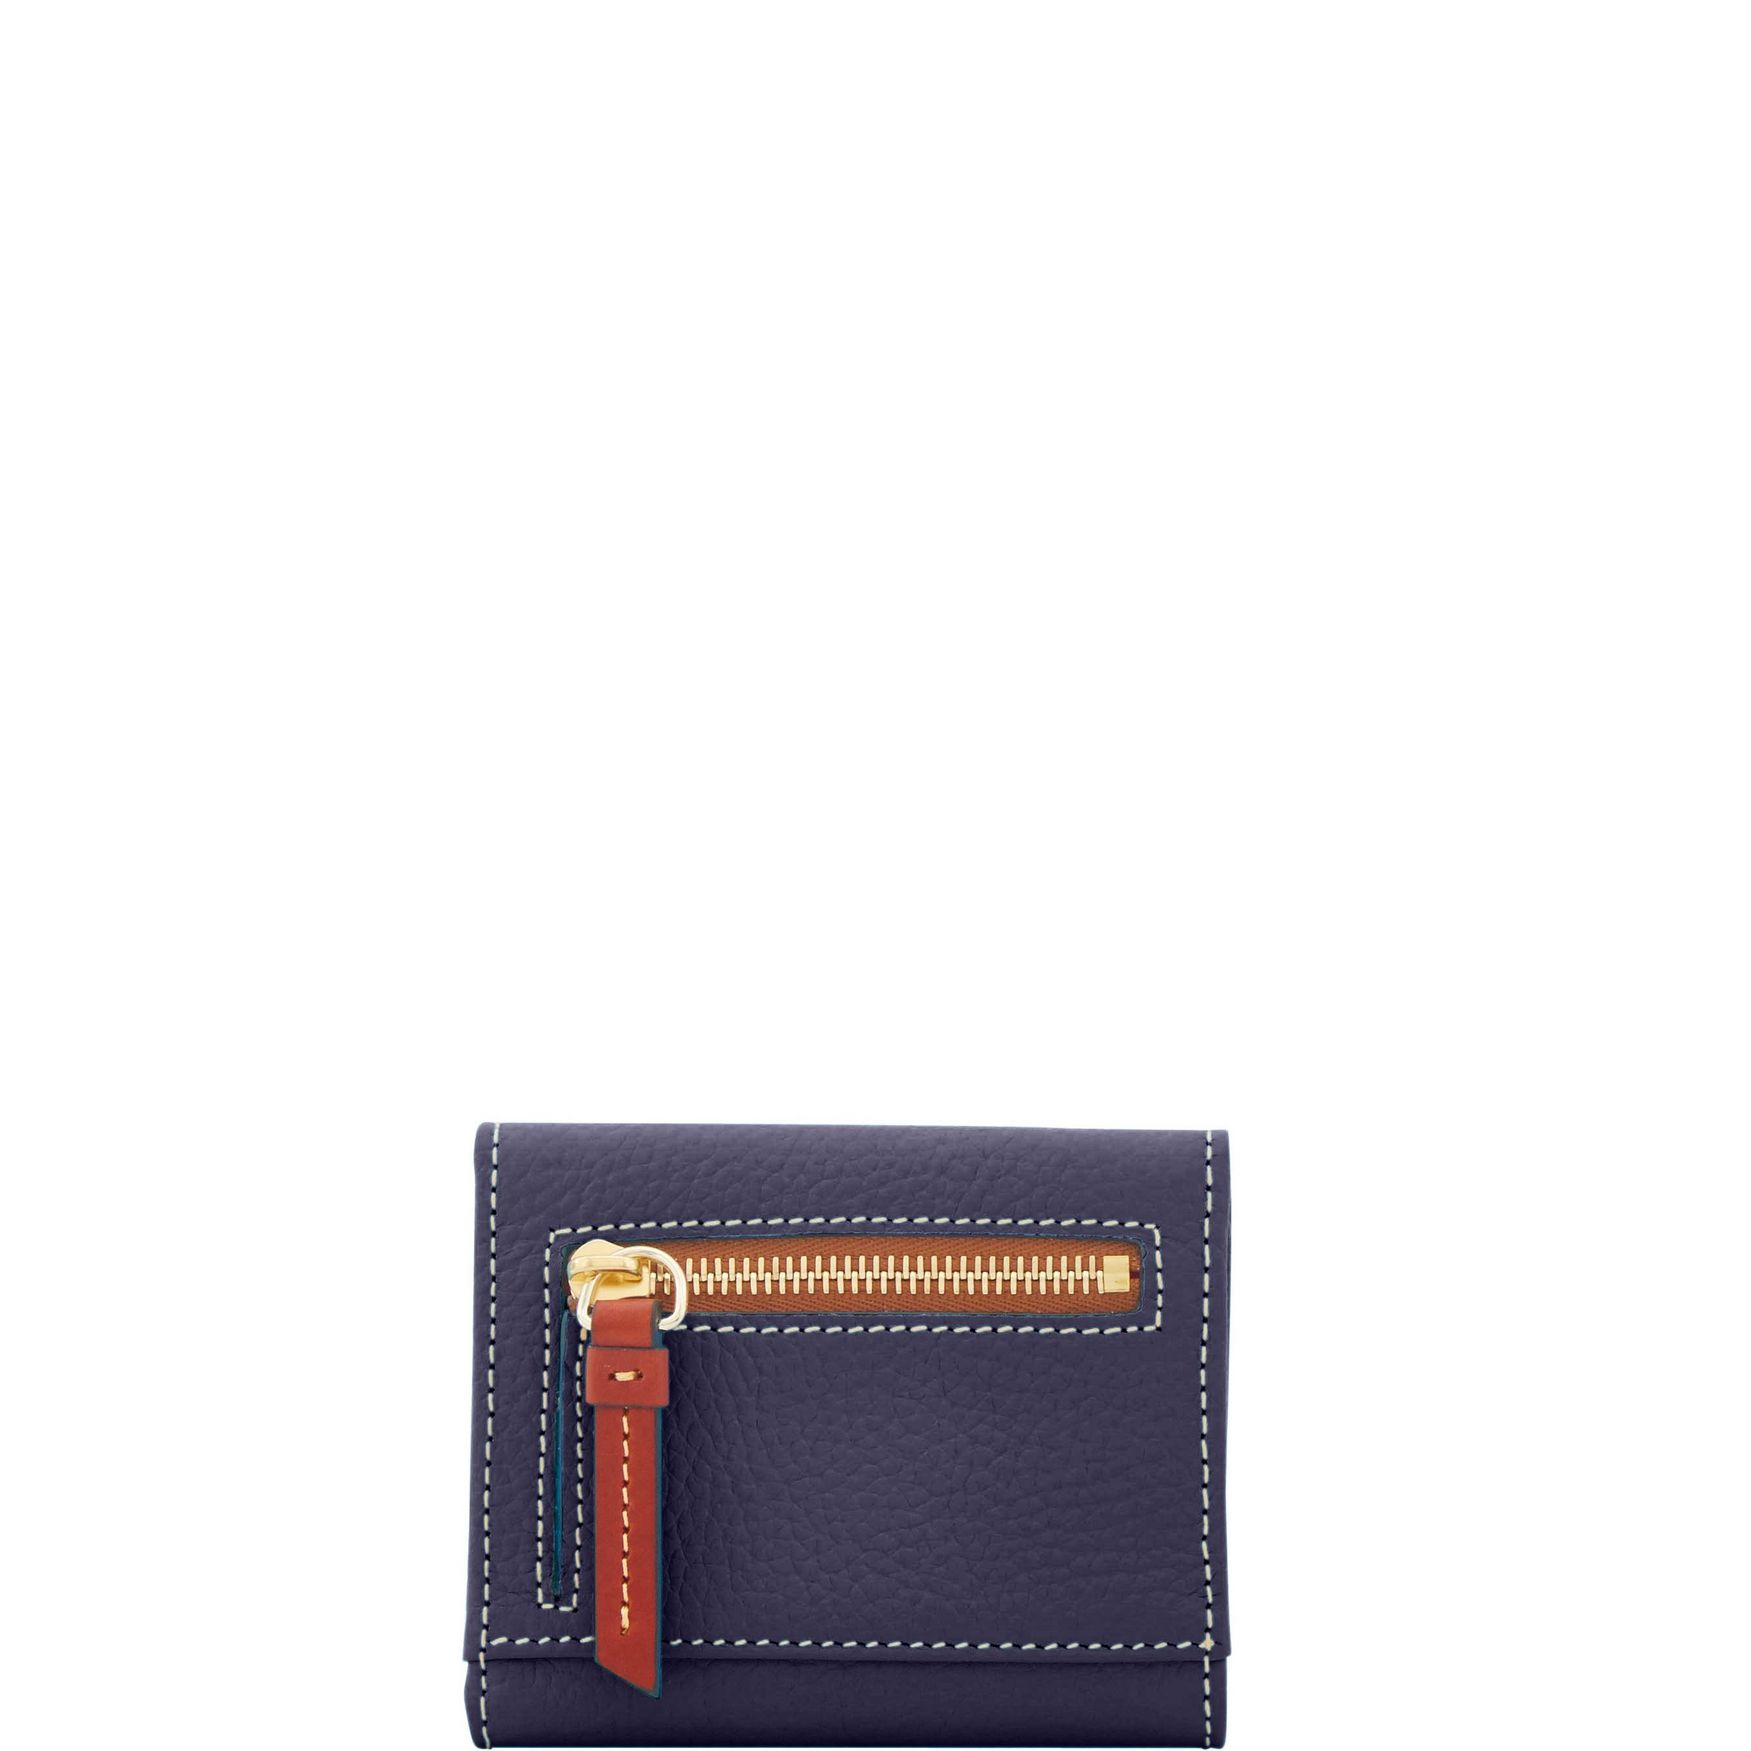 Dooney-amp-Bourke-Pebble-Grain-Small-Flap-Wallet thumbnail 54